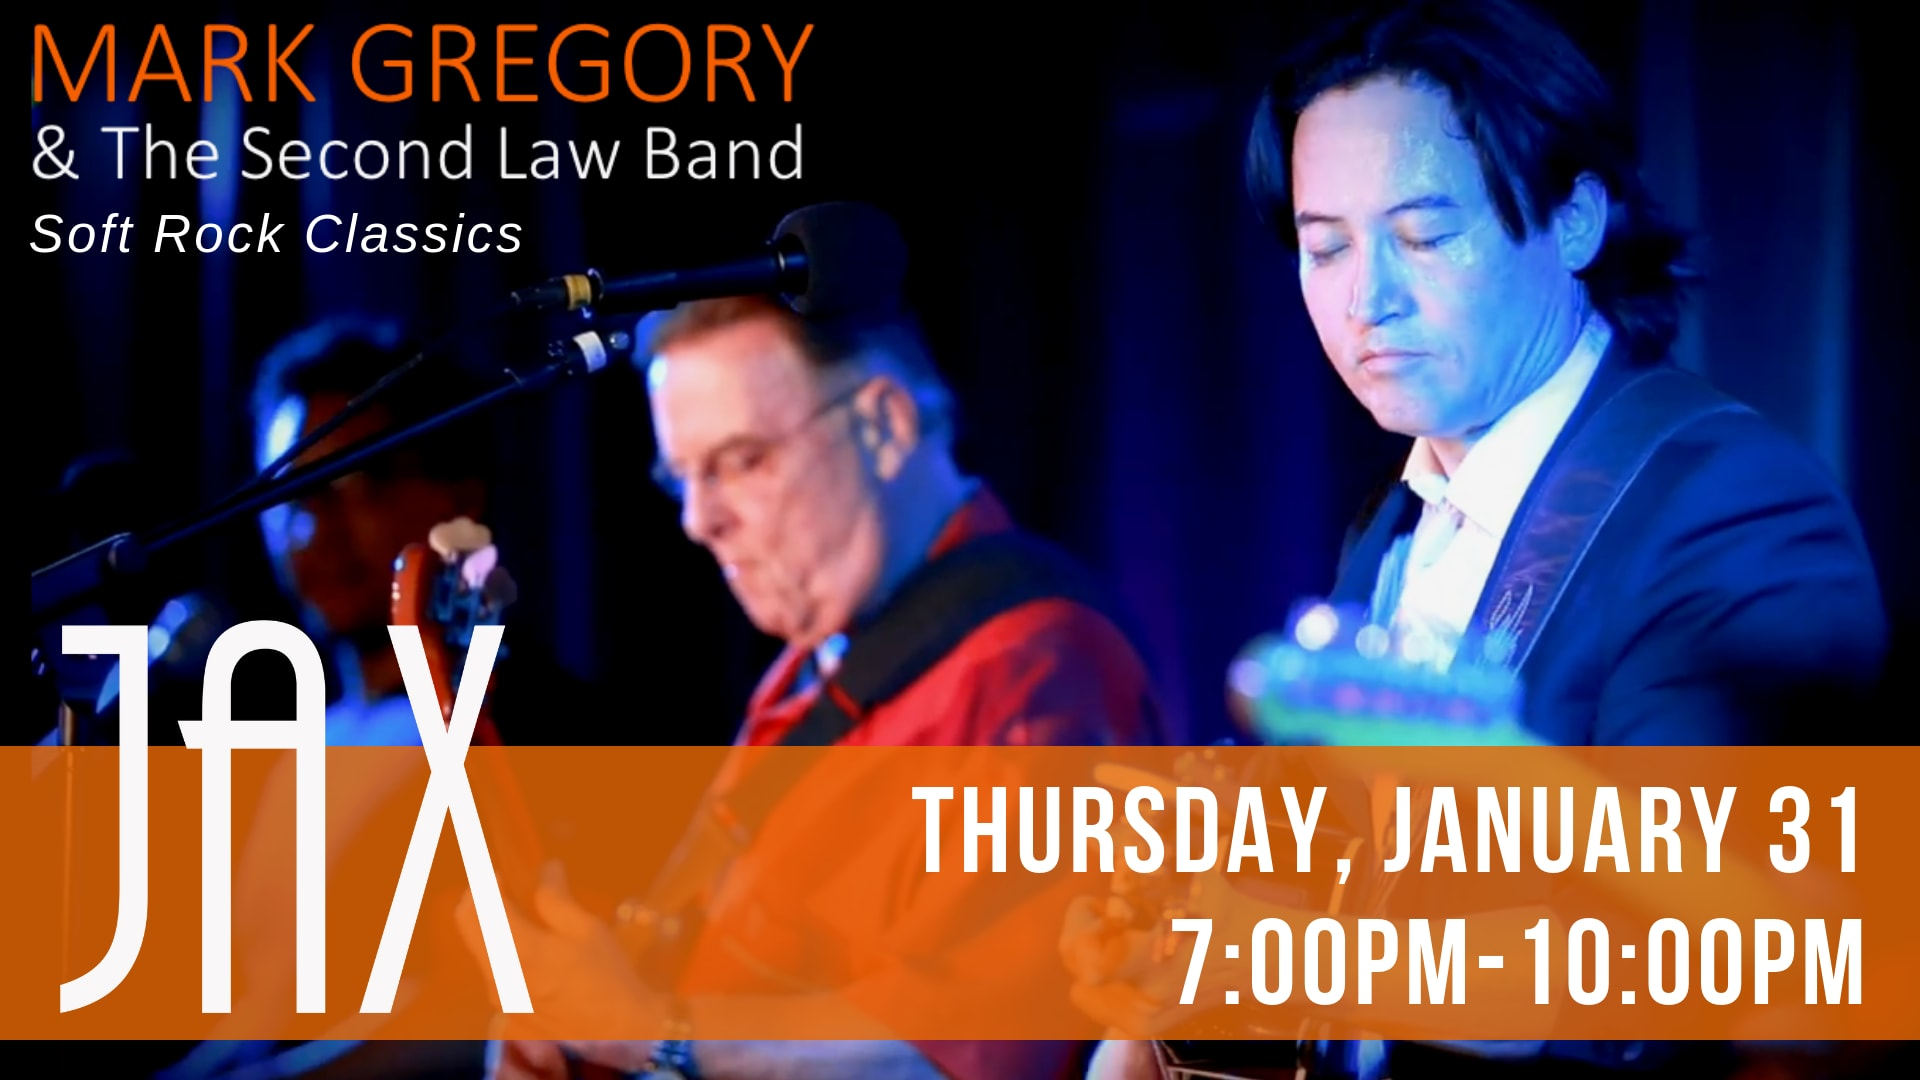 January 31 | MARK GREGORY AND THE SECOND LAW BAND